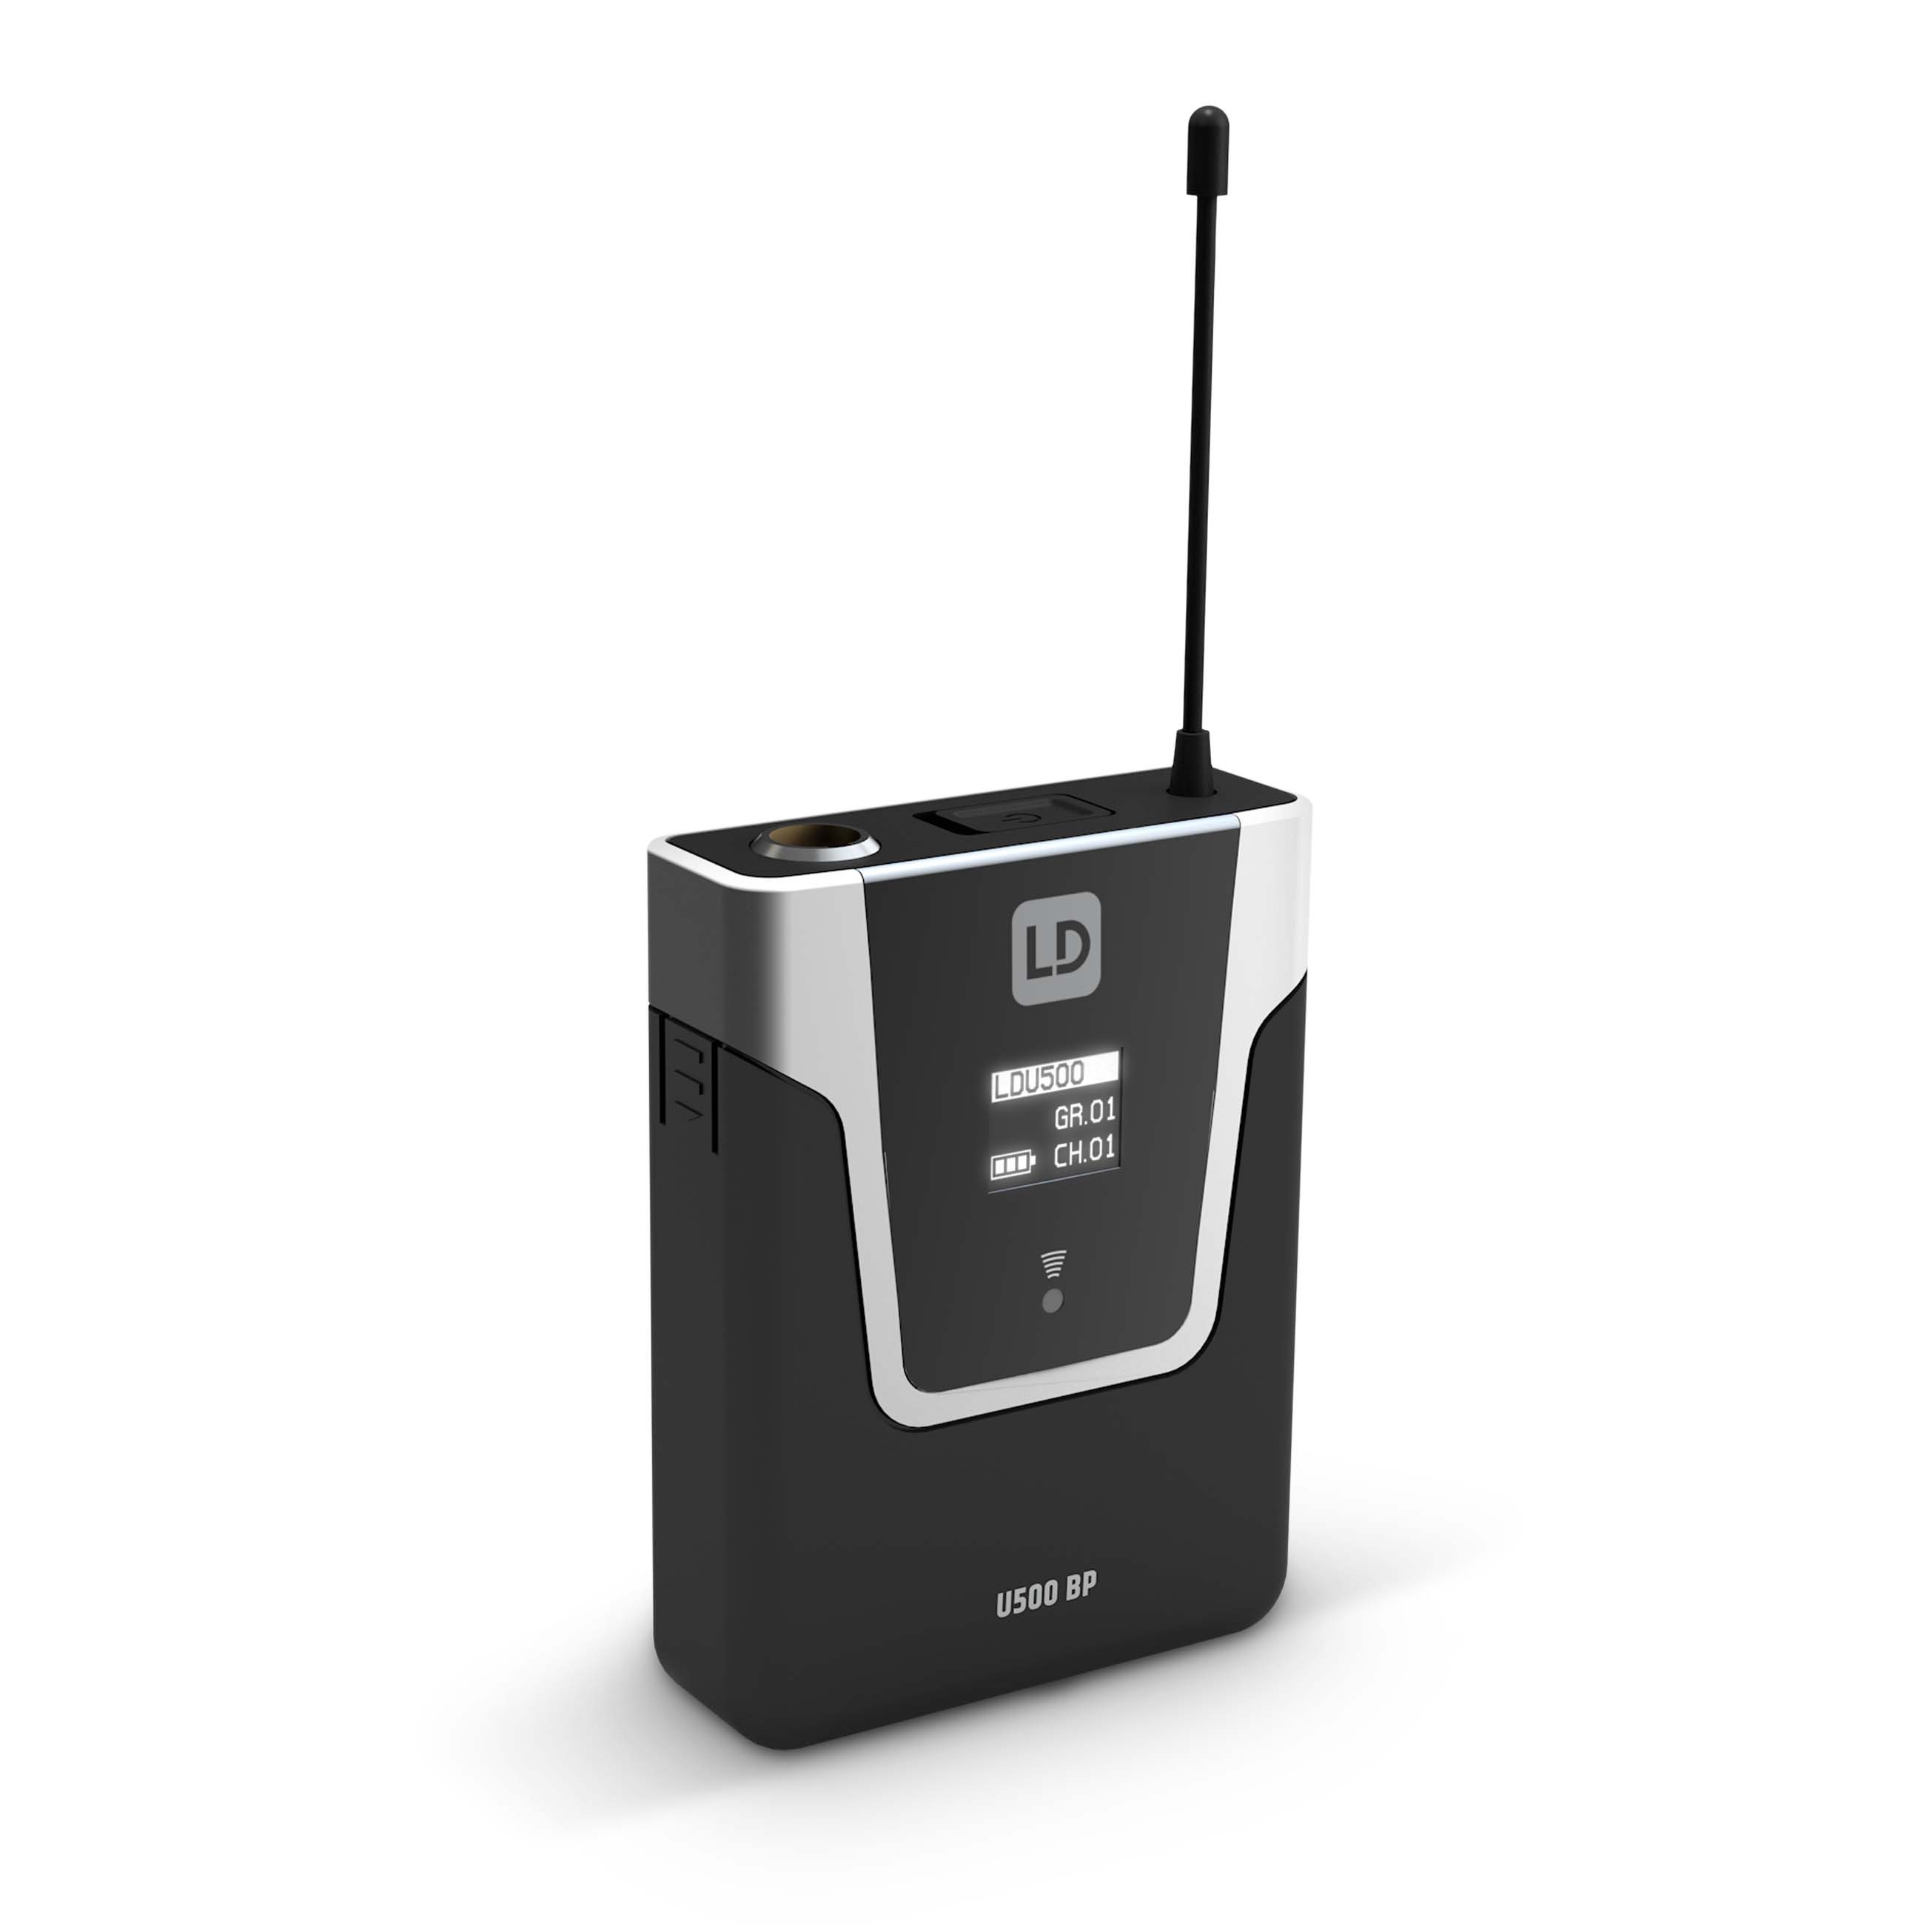 U506 UK HBH 2 Wireless Microphone System with Bodypack, Headset and Dynamic Handheld Microphone